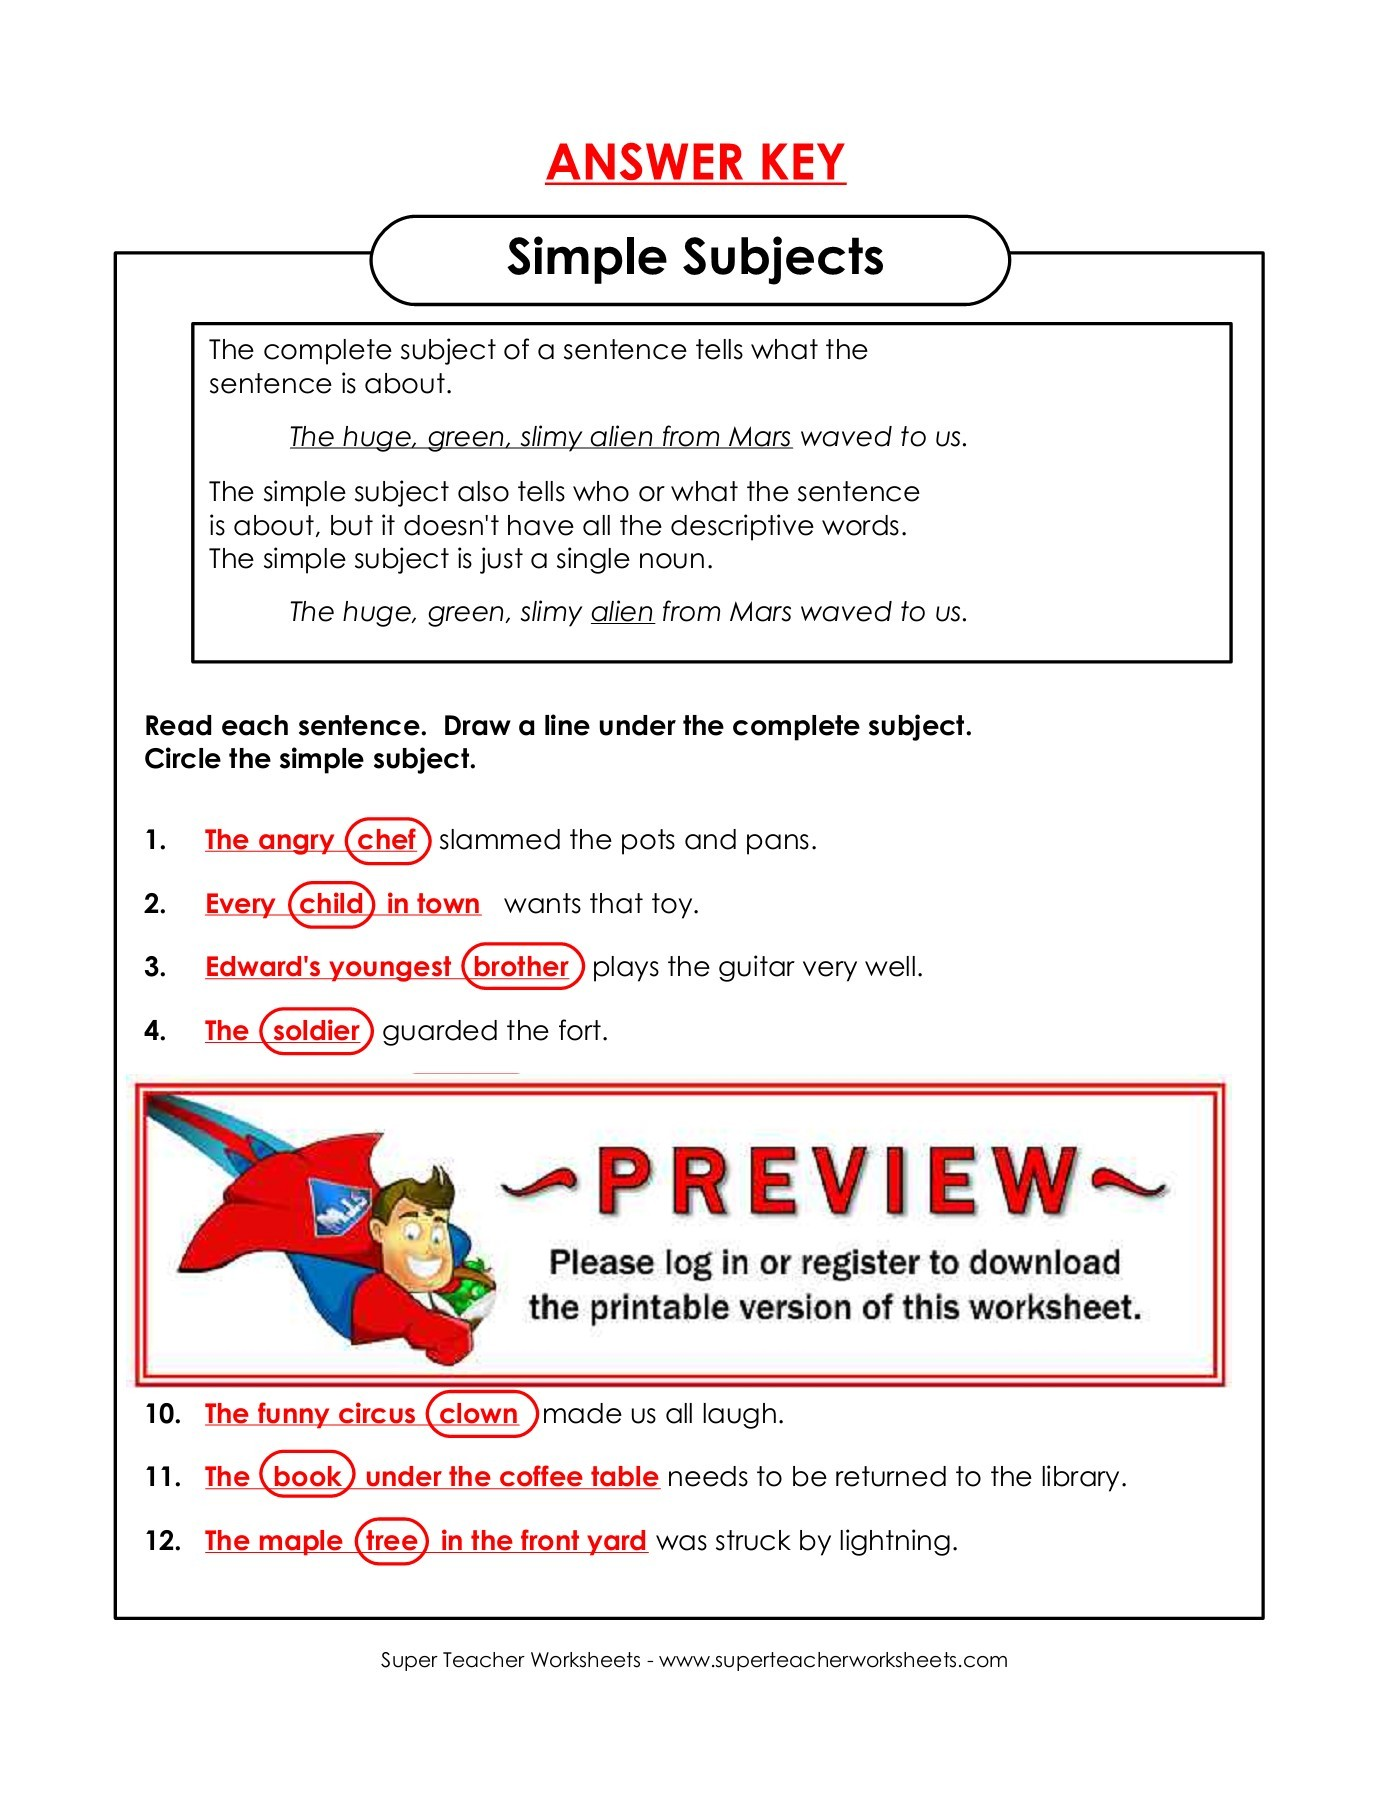 Super Teacher Worksheets Answer Key Tutore